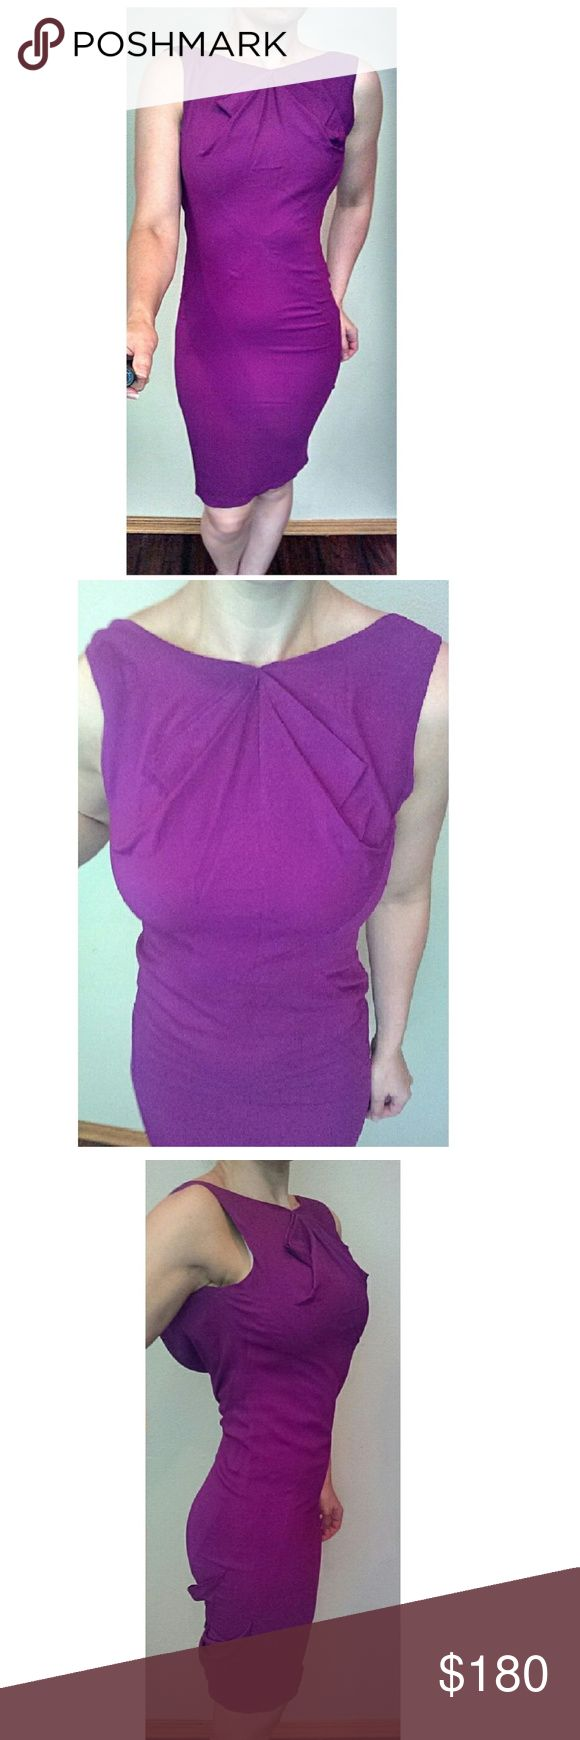 "Zac Posen Purple Draped Pencil Dress SZ 0 FITS 6 Stunning Zac Posen Purple draped cocktail dress. Folded pleates at bodice. Flows to right below the knee. Draped to hit at the lower back. Folds around the lower back.   Excellent condition.  Size 0. Runs much larger than usual Zac Posen sizing. It seems to be mislabeled as this is definitely not a 0. Fits like a size 6 so I have listed as such.   Measurements taken laying flat: Bust: 17"" Waist: 14"" Hips: 17"" Length: 39"" Zac Posen Dresses Midi"